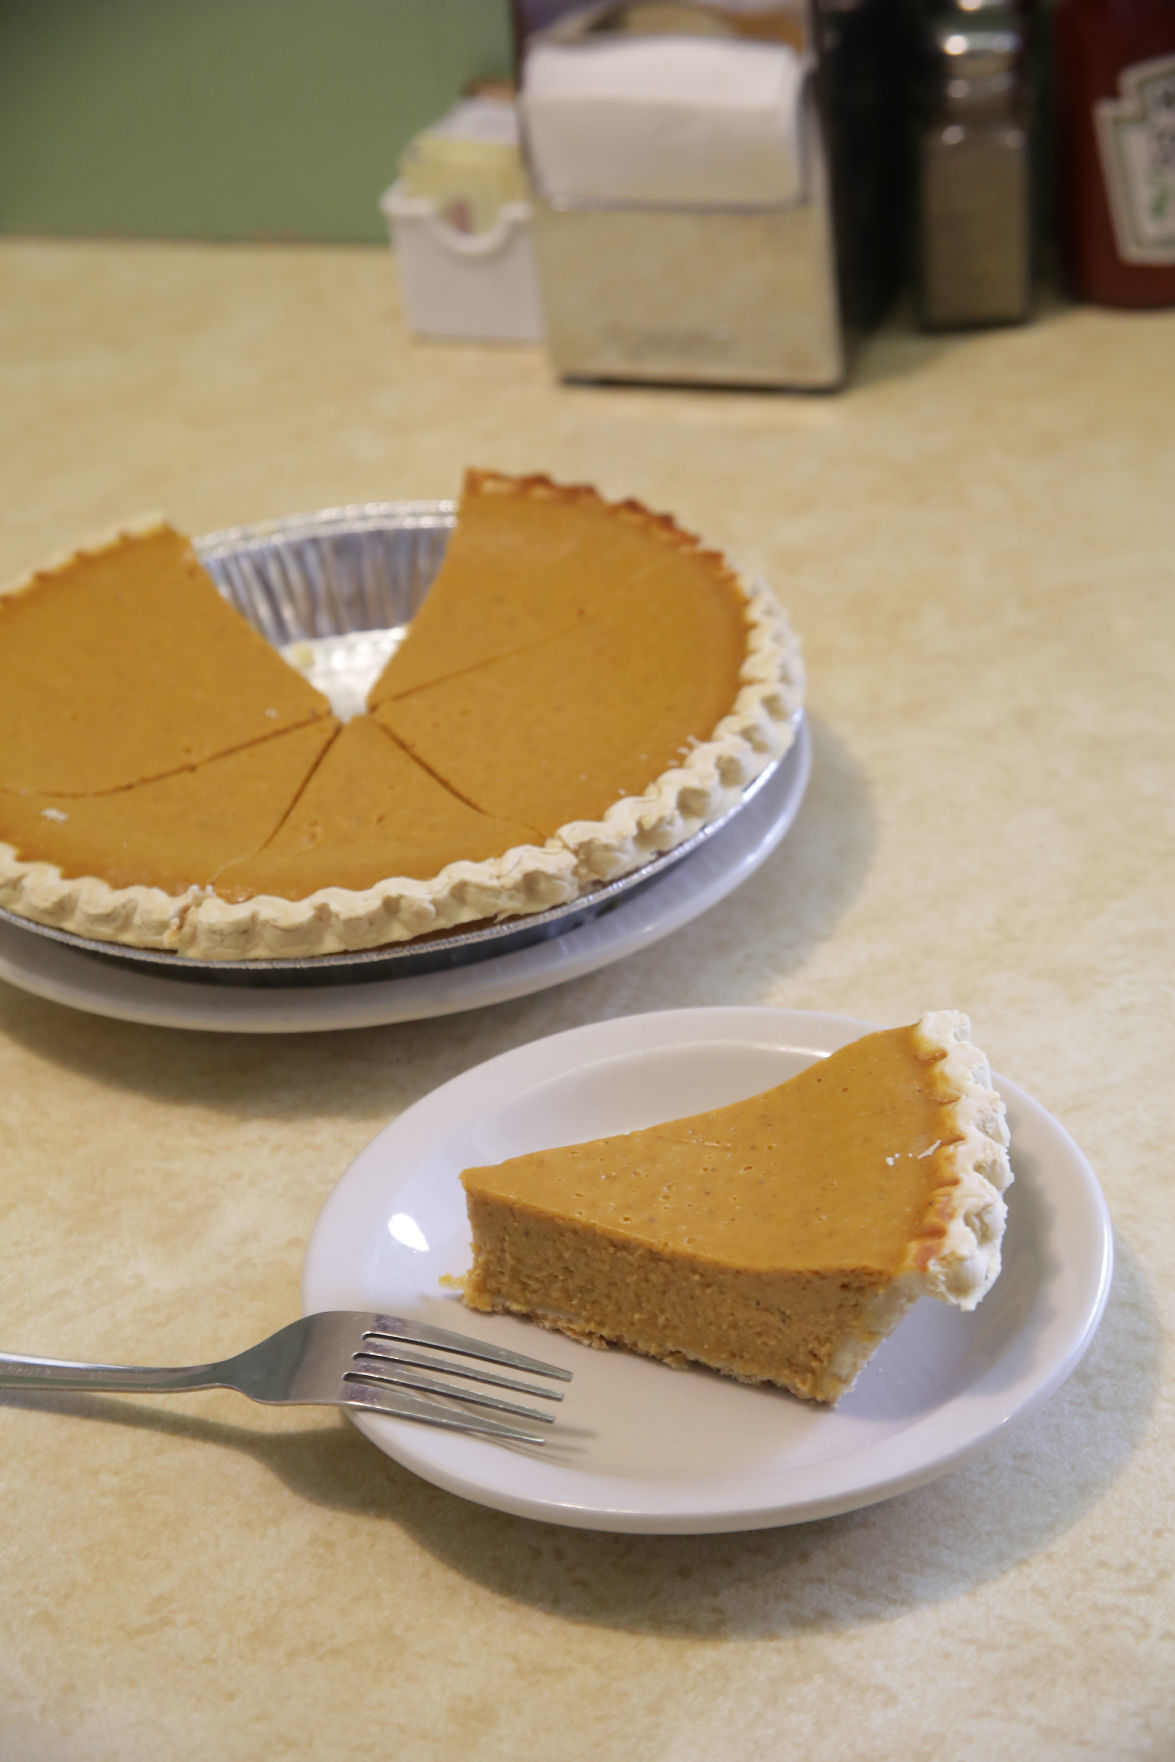 Region bakers offer tips for making the perfect pumpkin pie, cake and more